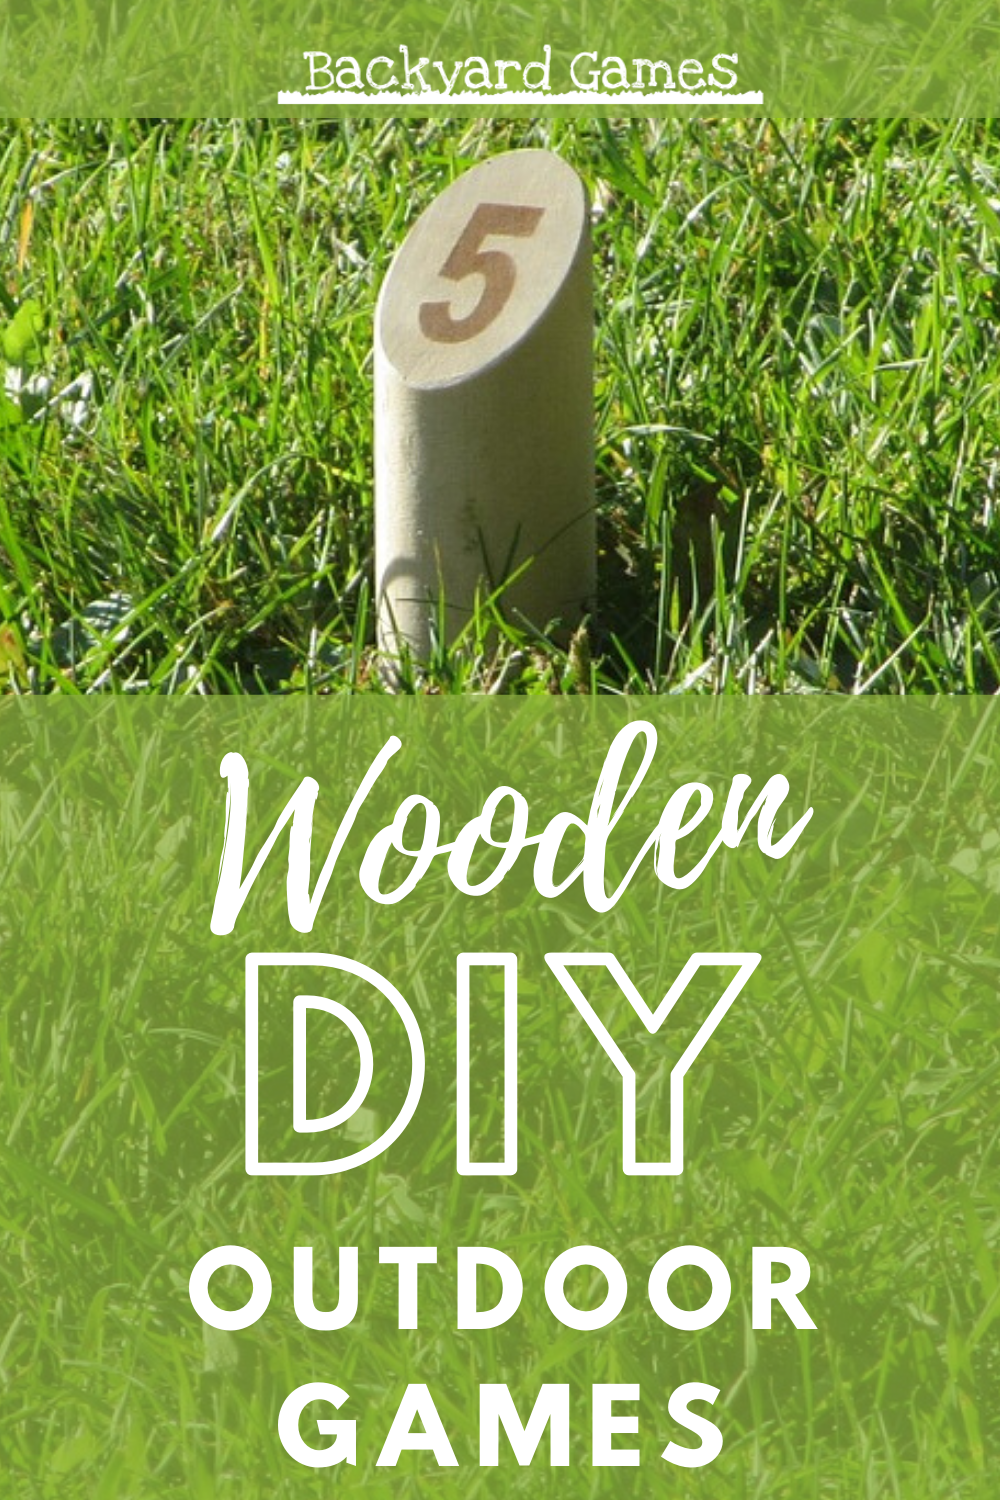 5 Easy to Build DIY Outdoor Games 1